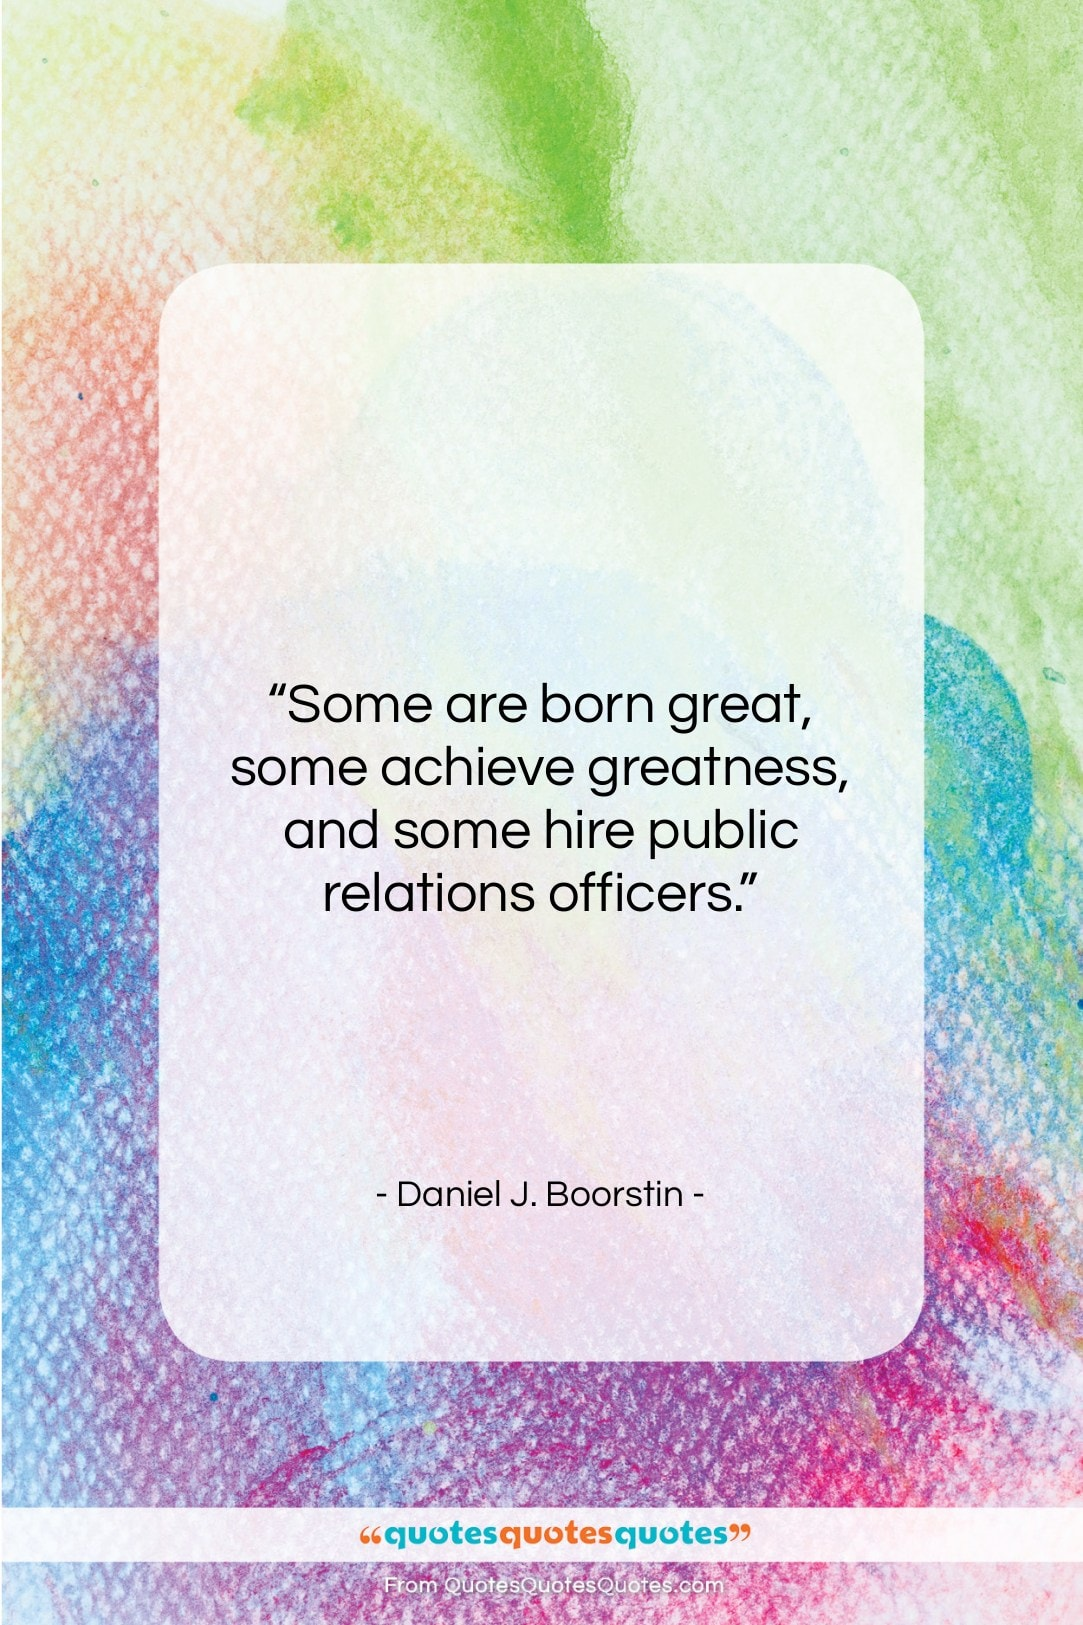 """Daniel J. Boorstin quote: """"Some are born great, some achieve greatness,…""""- at QuotesQuotesQuotes.com"""